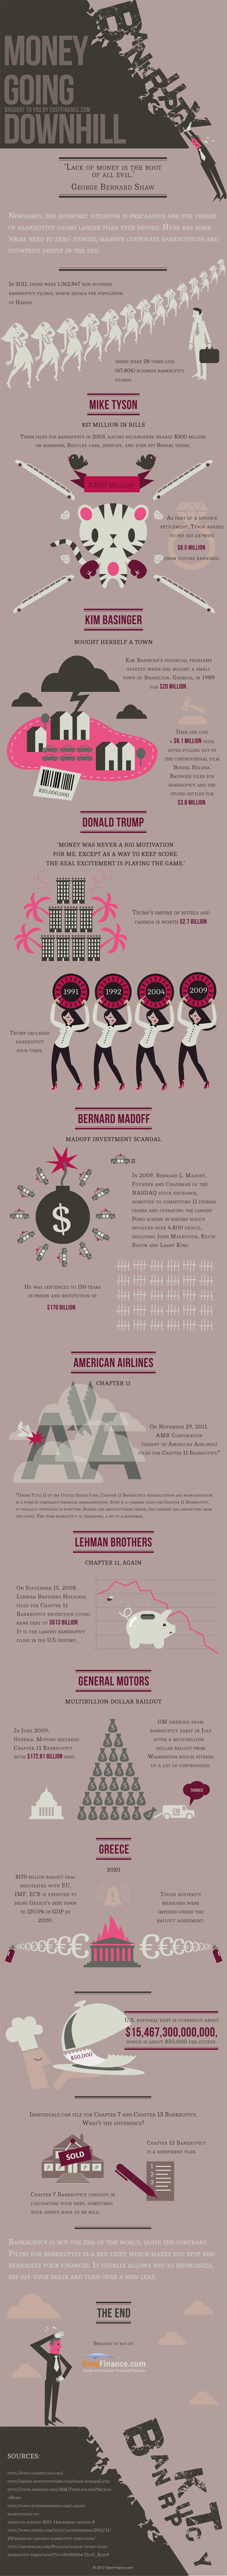 Money Going Downhill (Infographic)